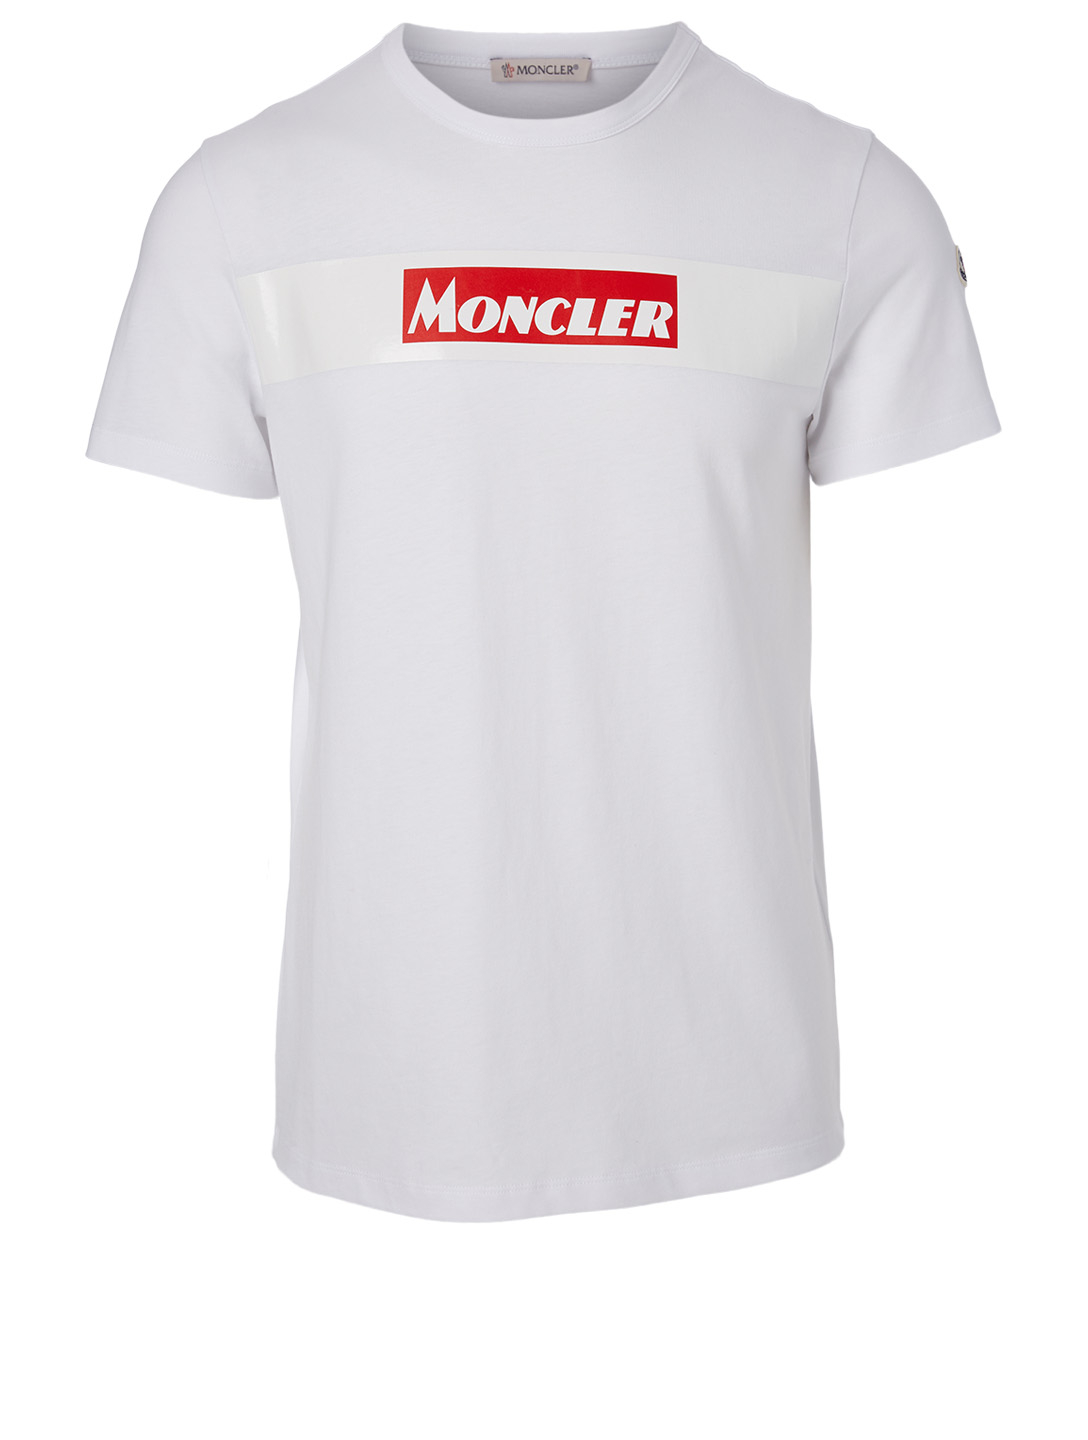 MONCLER Cotton Logo T-Shirt Men's White